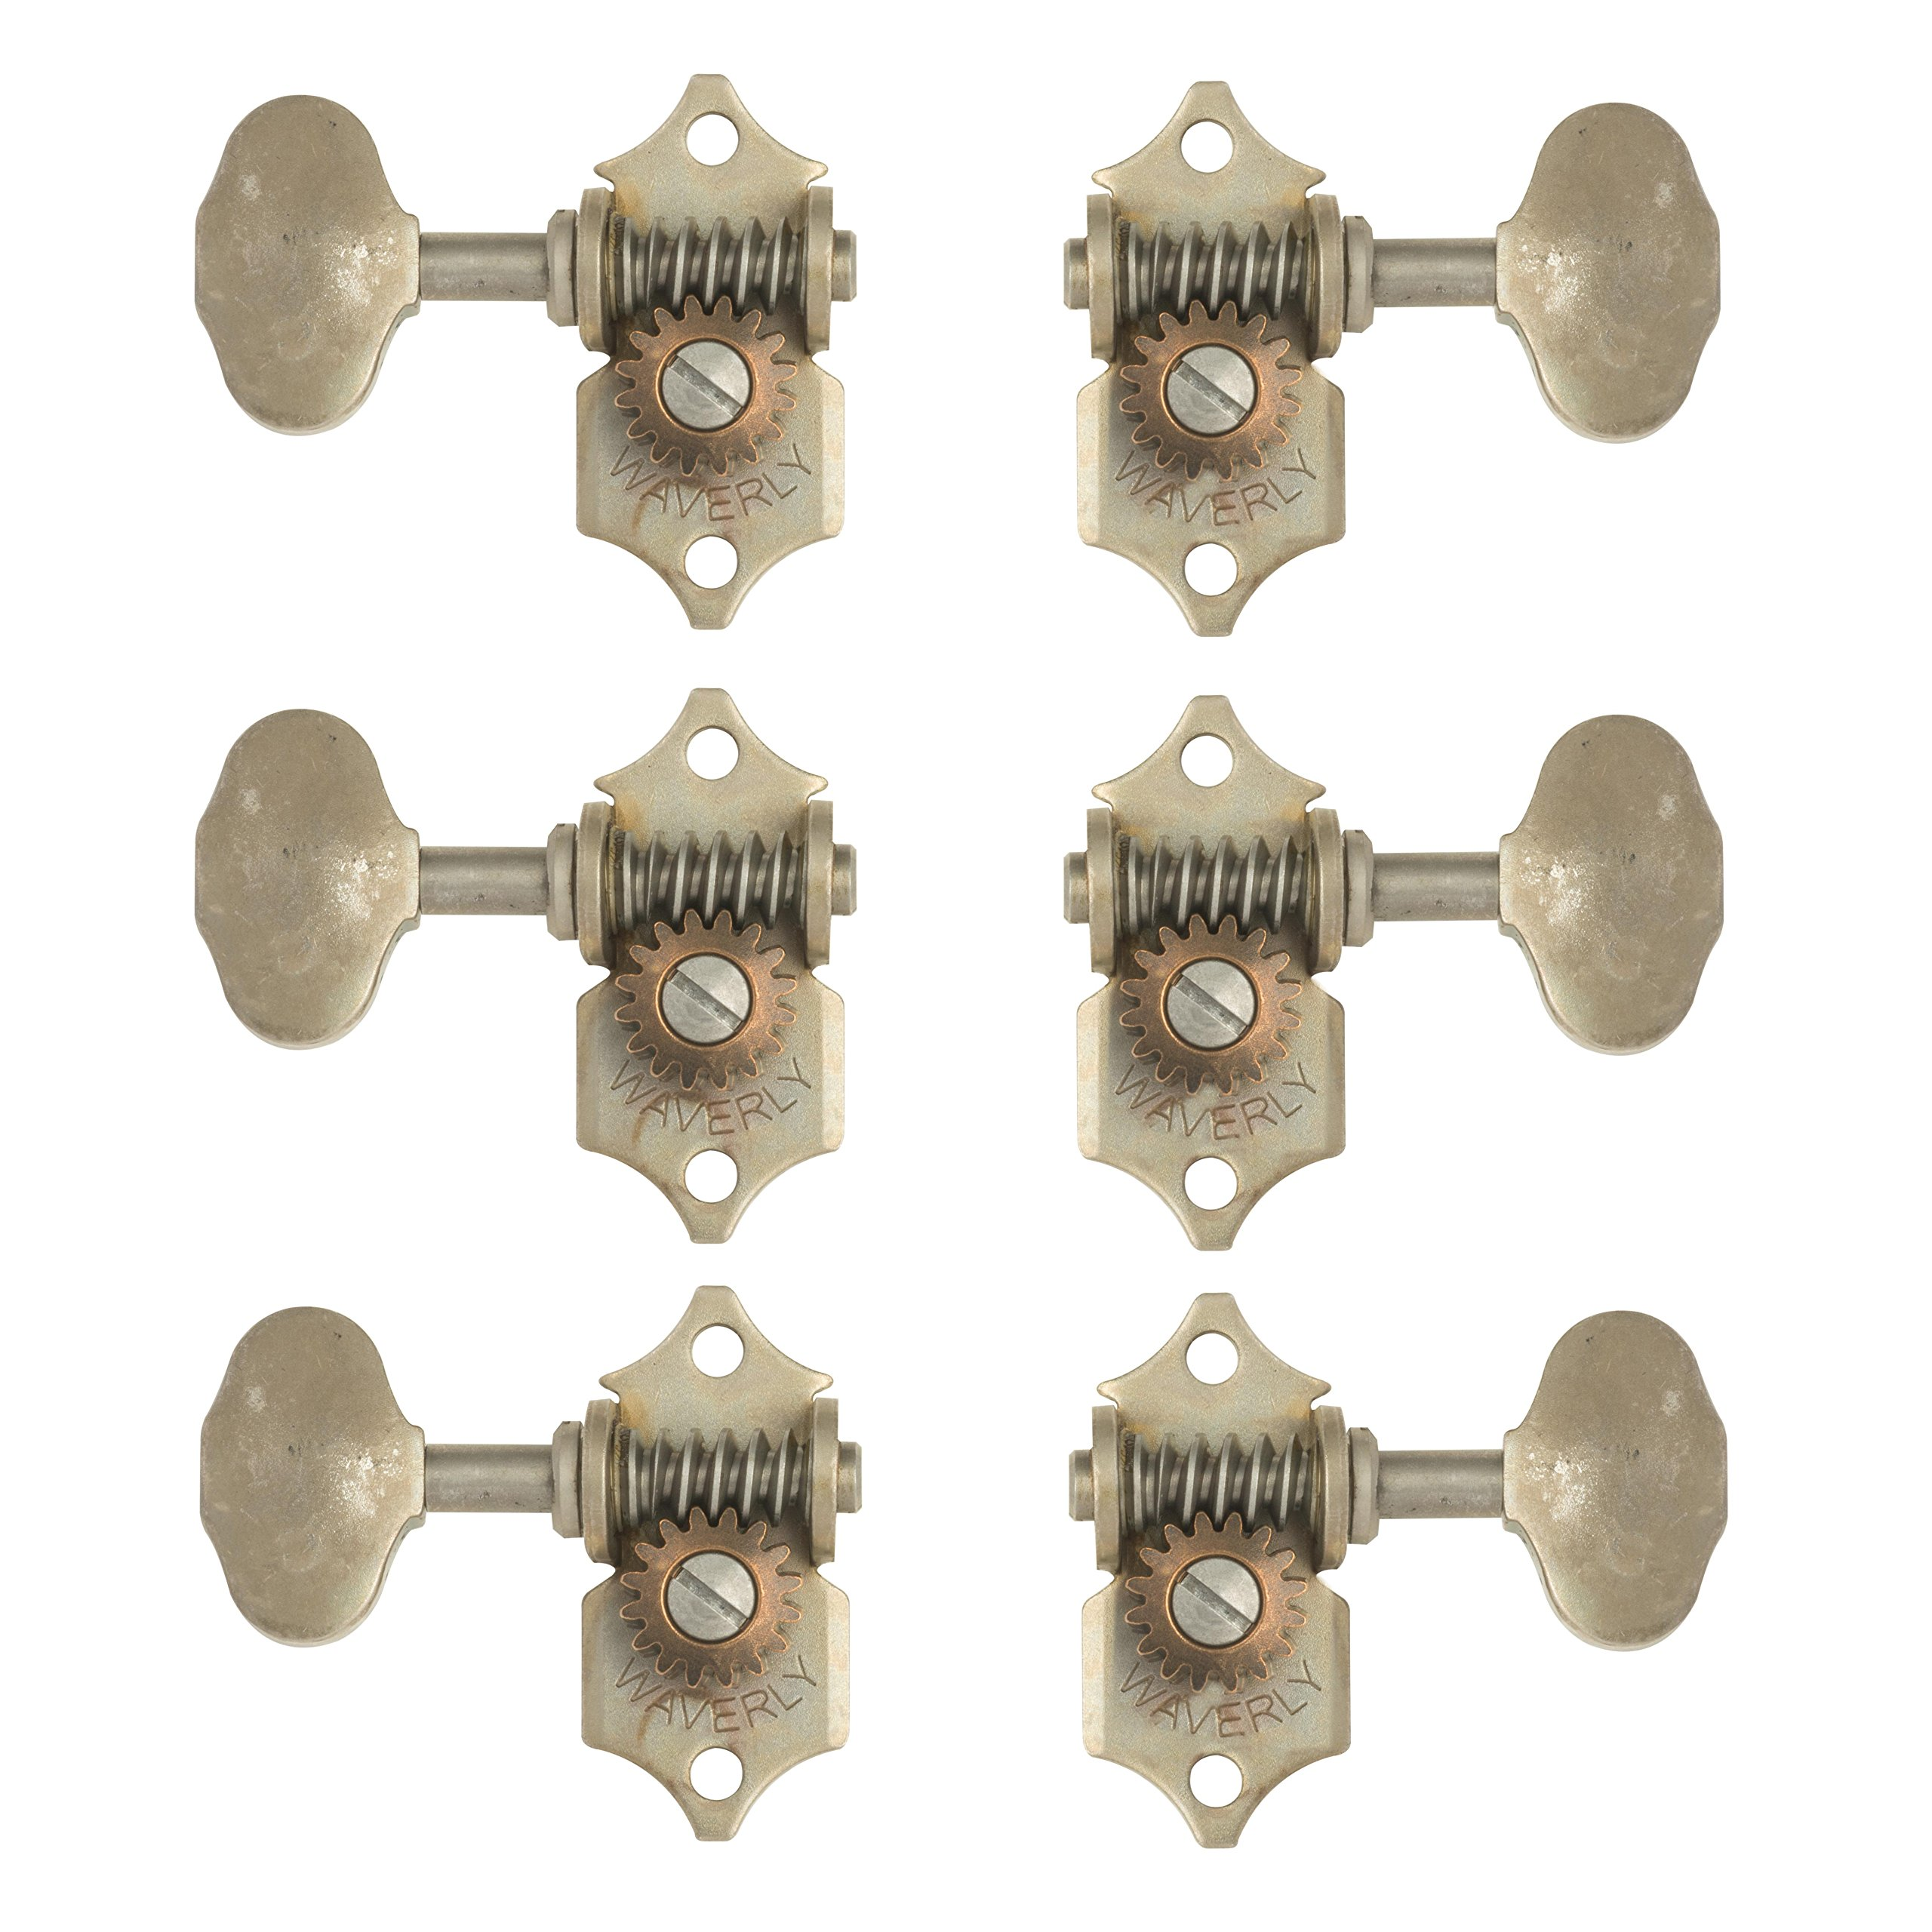 Waverly Guitar Tuners with Butterbean Knobs, for Solid Pegheads, Relic nickel, 3L/3R